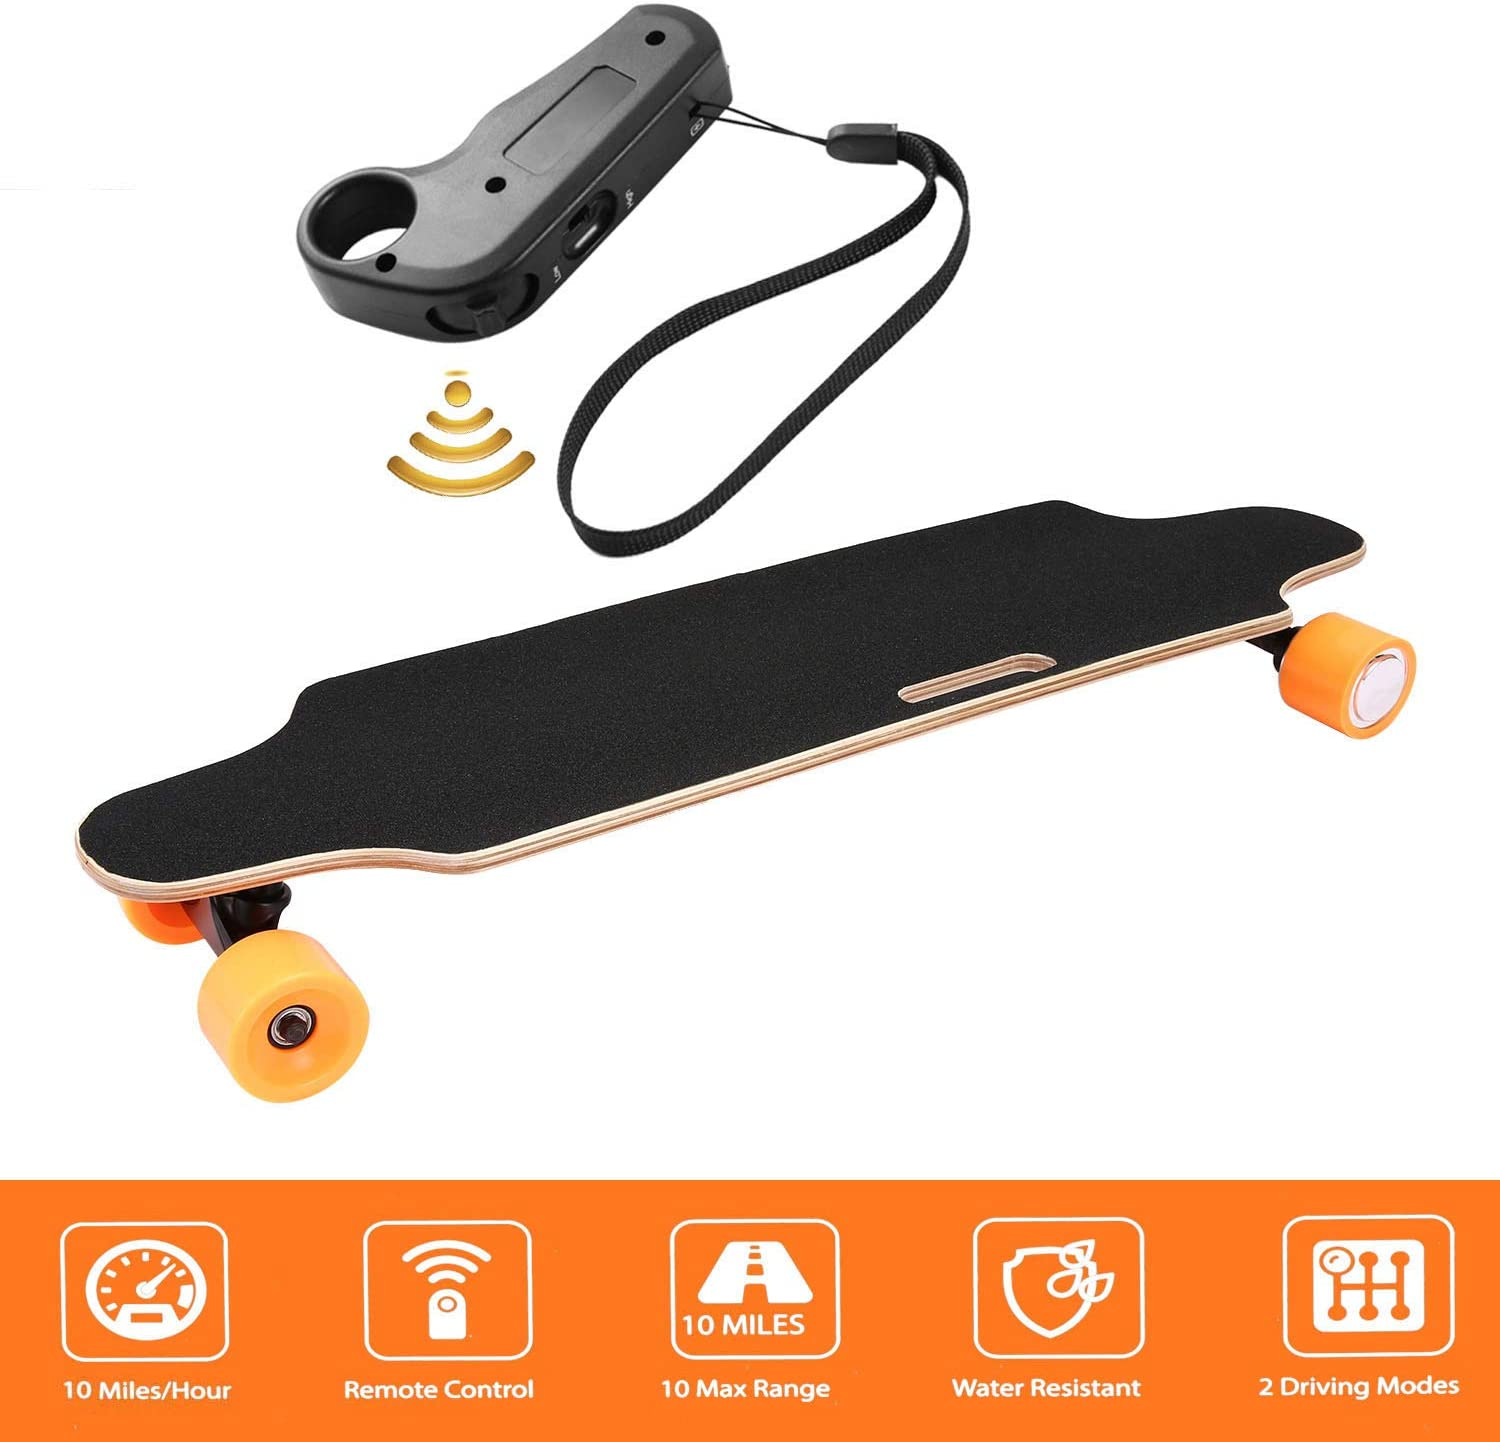 12 MPH Top Speed 10 Miles Range US Stock shaofu Electric Skateboard Youth Electric Longboard with Wireless Remote Control